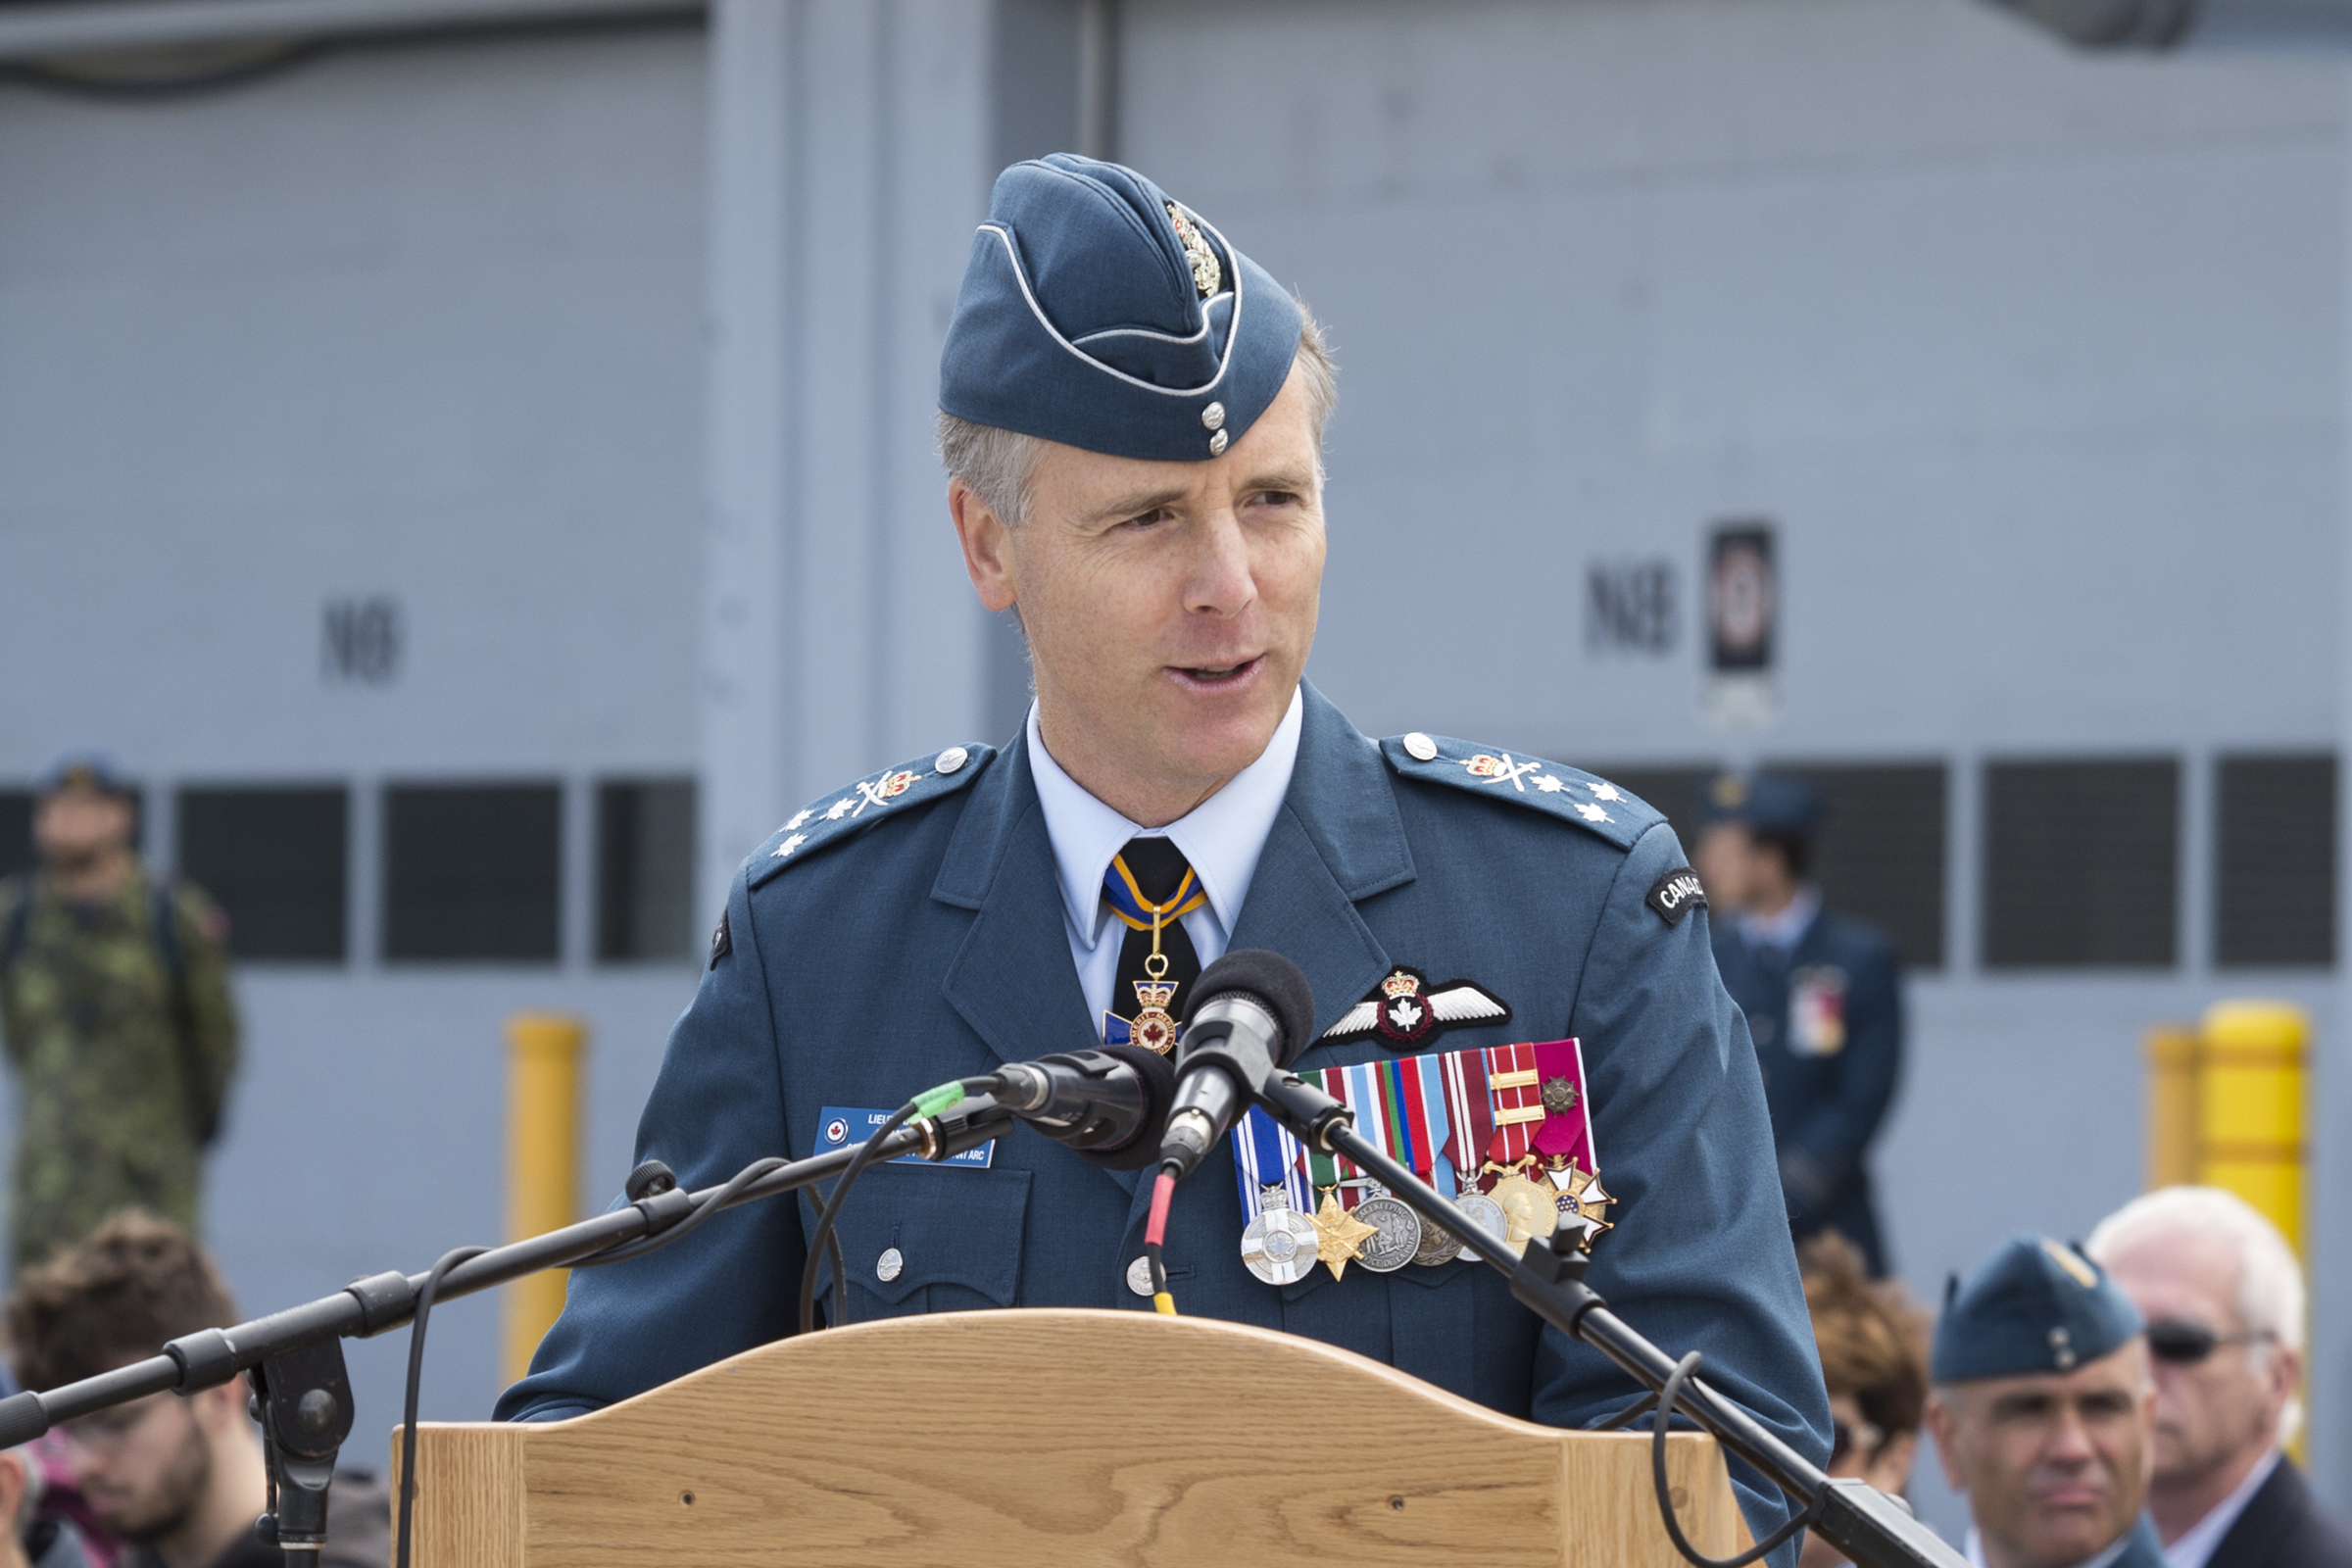 A man wearing a military uniform stands behind a lecturn speaking into a microphone.